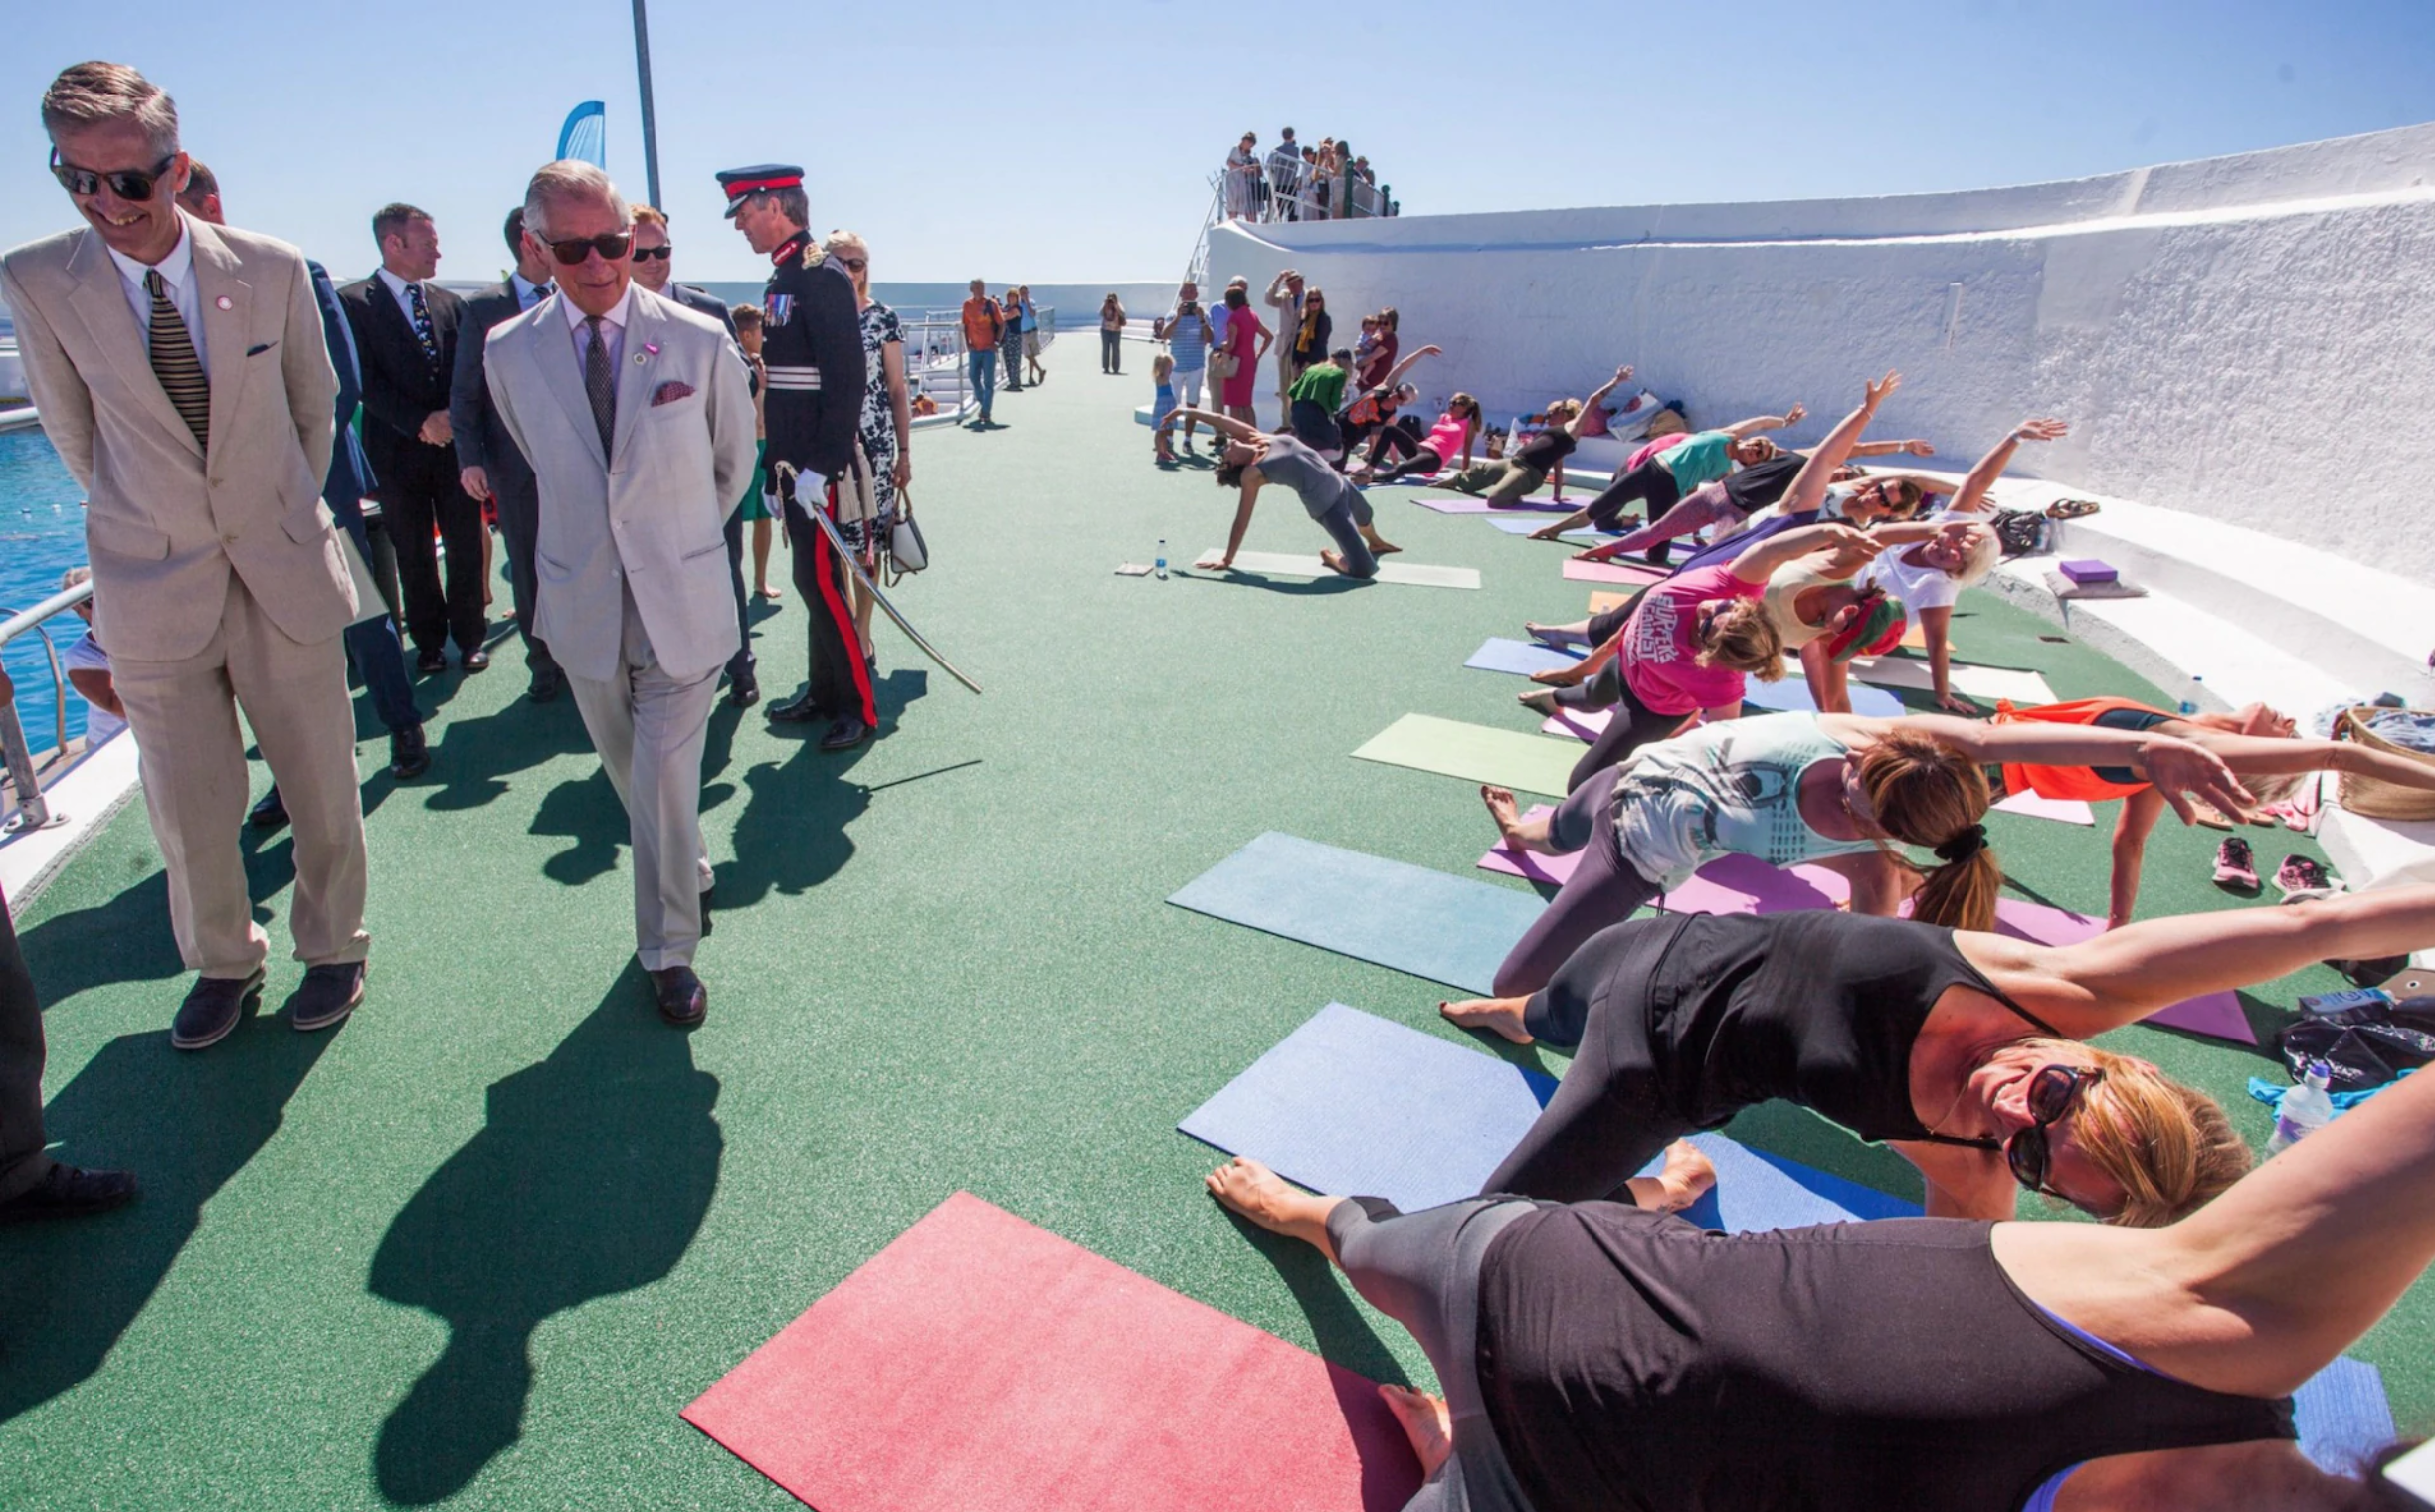 Yoga can ease pressure on health service, says Prince Charles